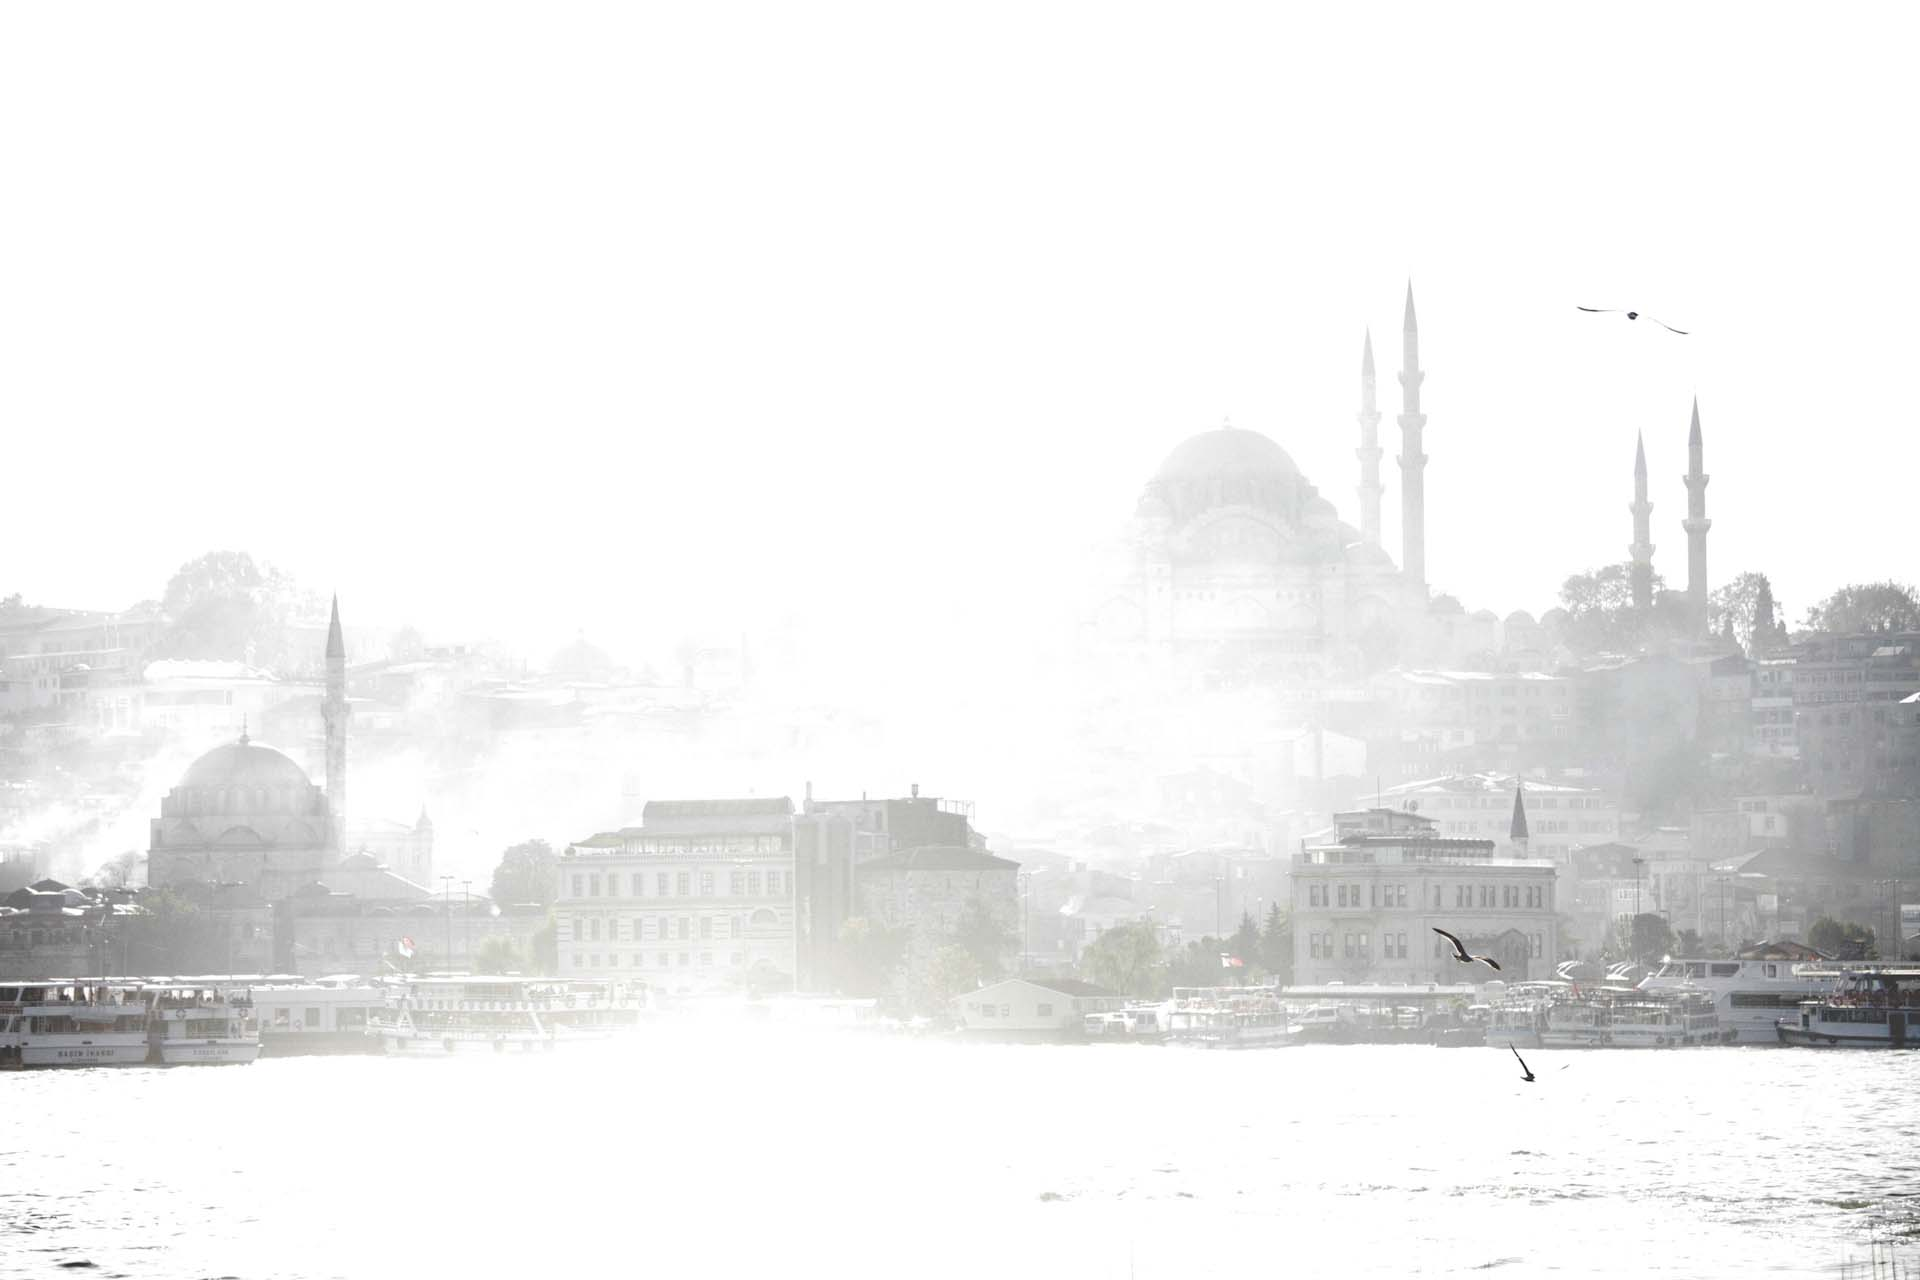 The Süleymaniye Camii looks through the sun breaking morning fog